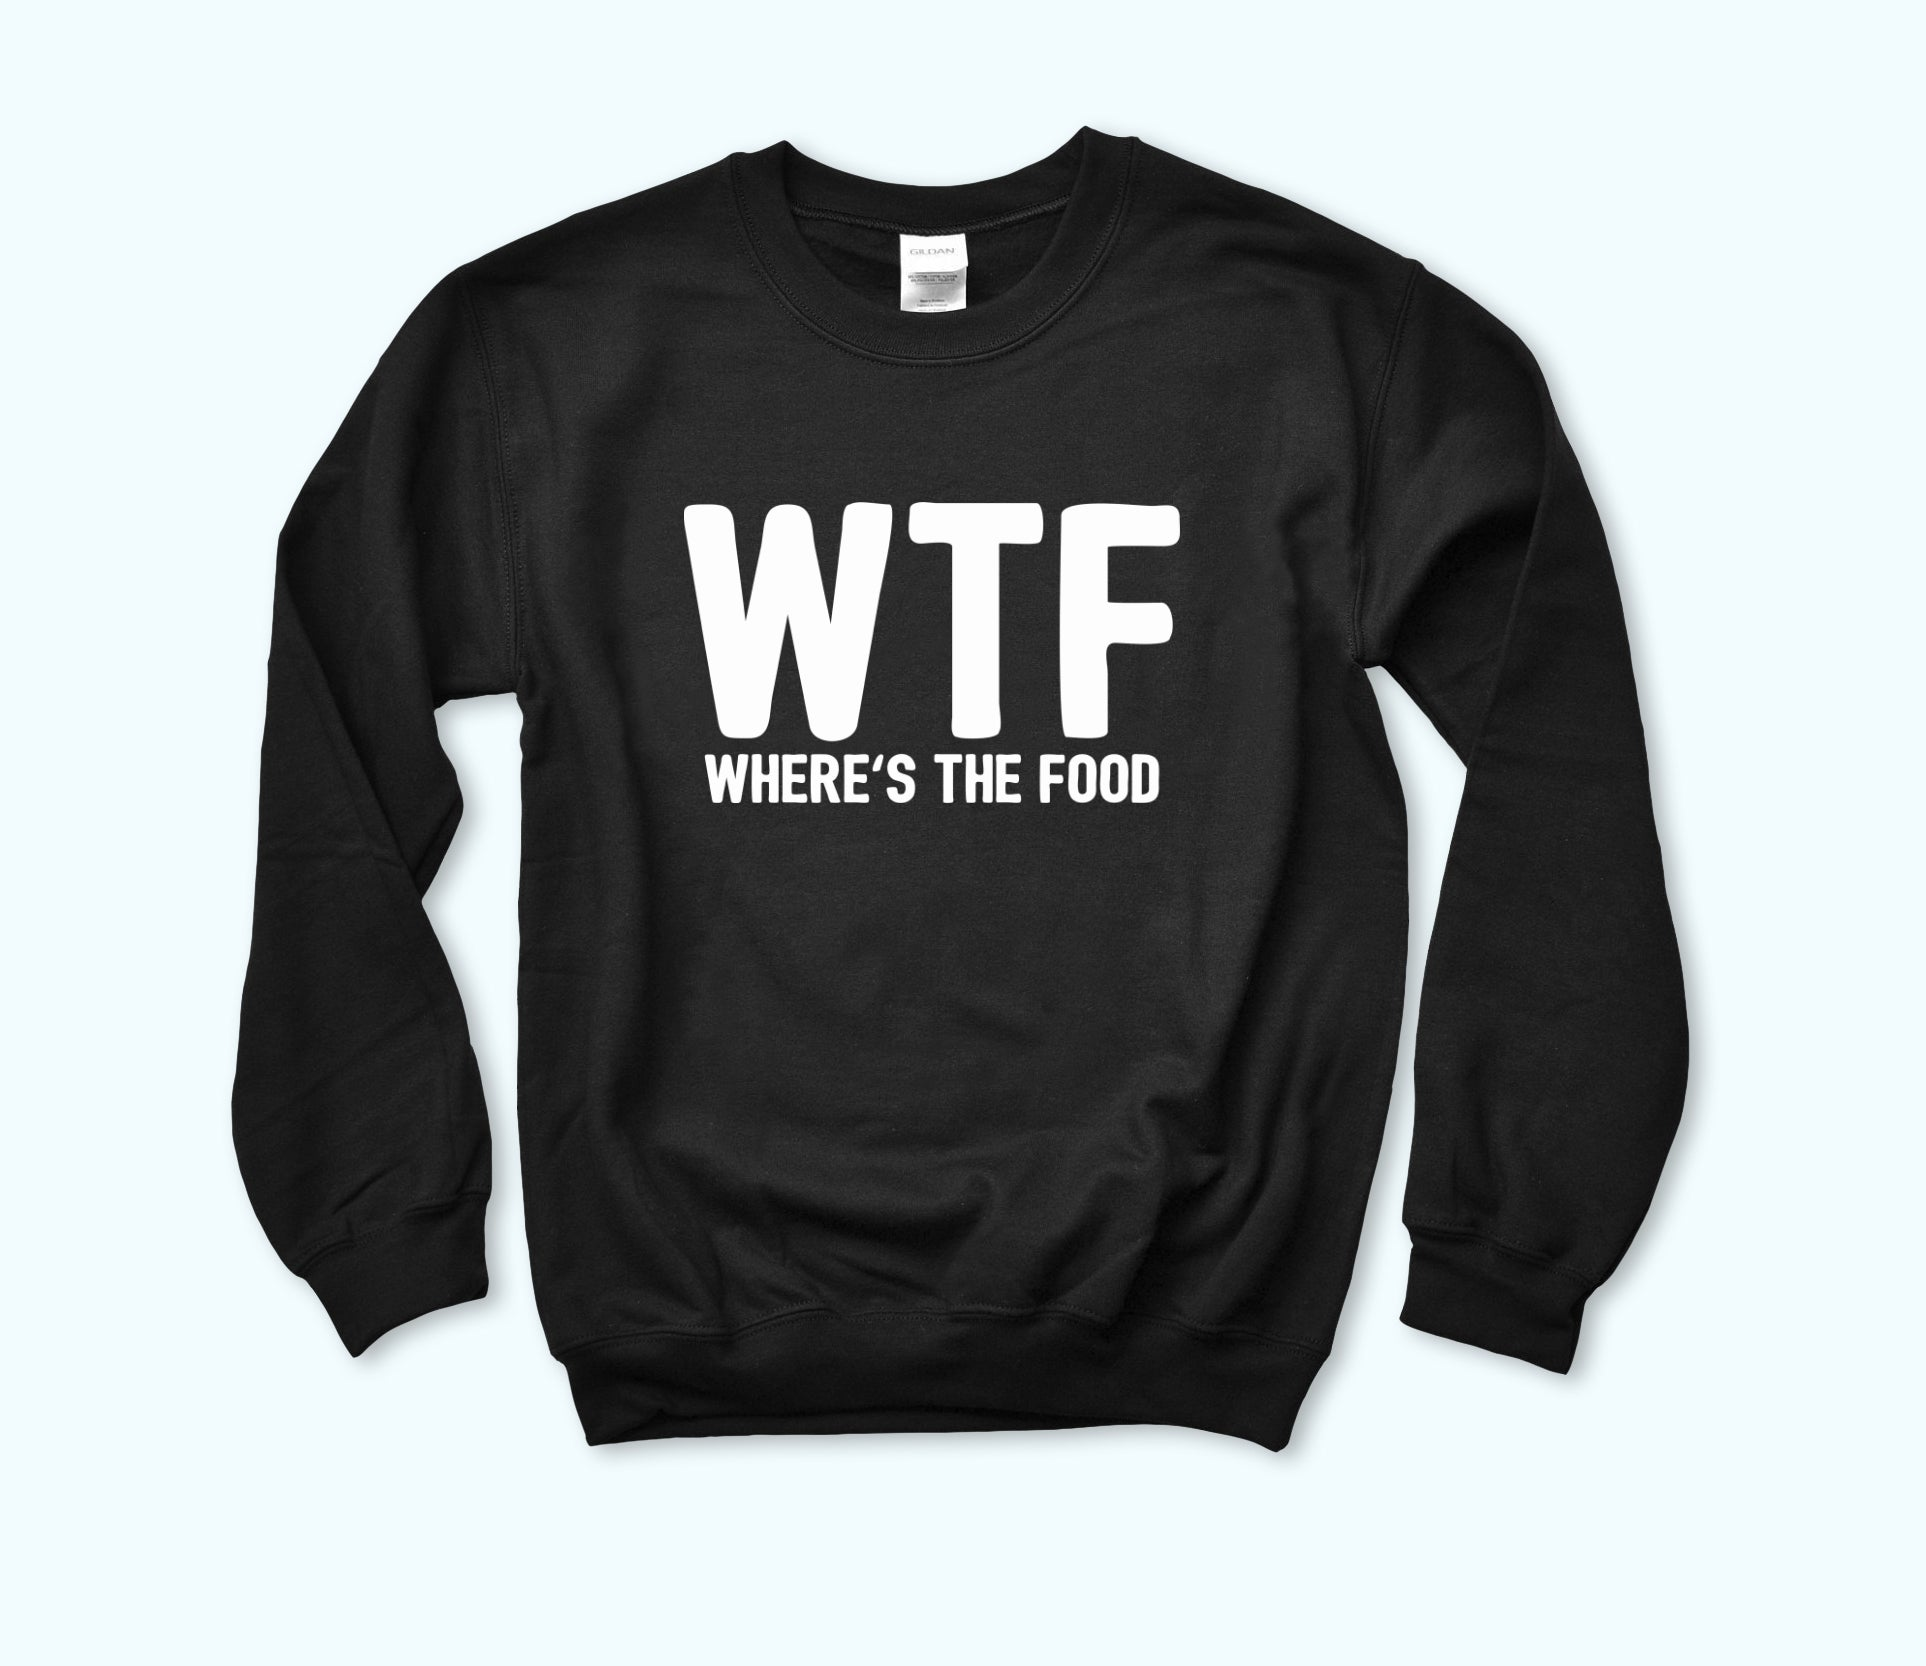 Black sweatshirt that says wtf where's the food - HighCiti